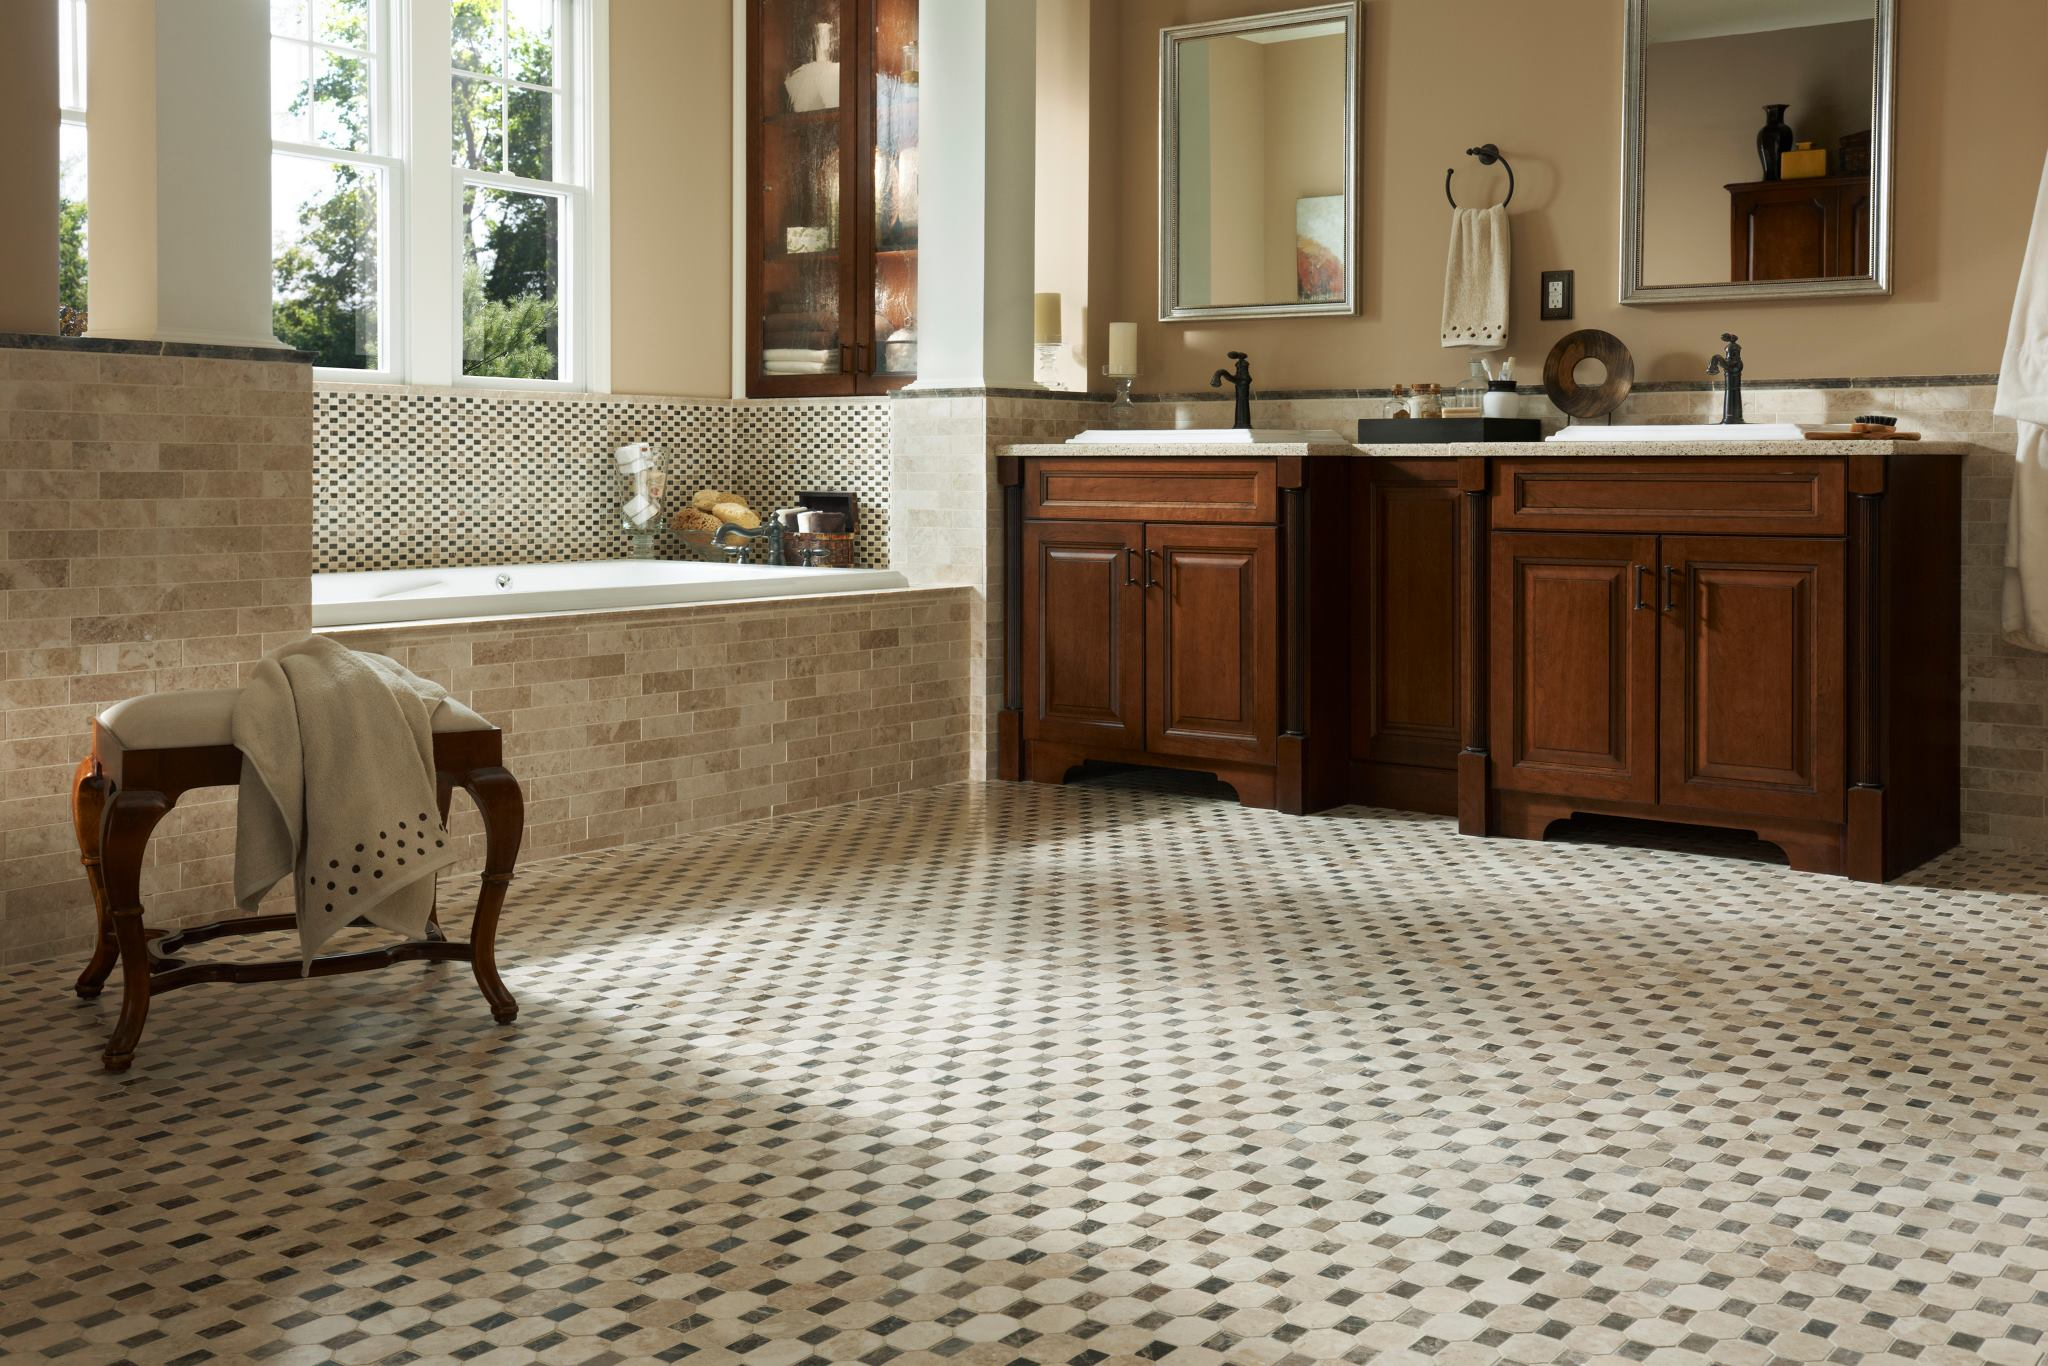 classic pattern of beige-tones small stone tiles